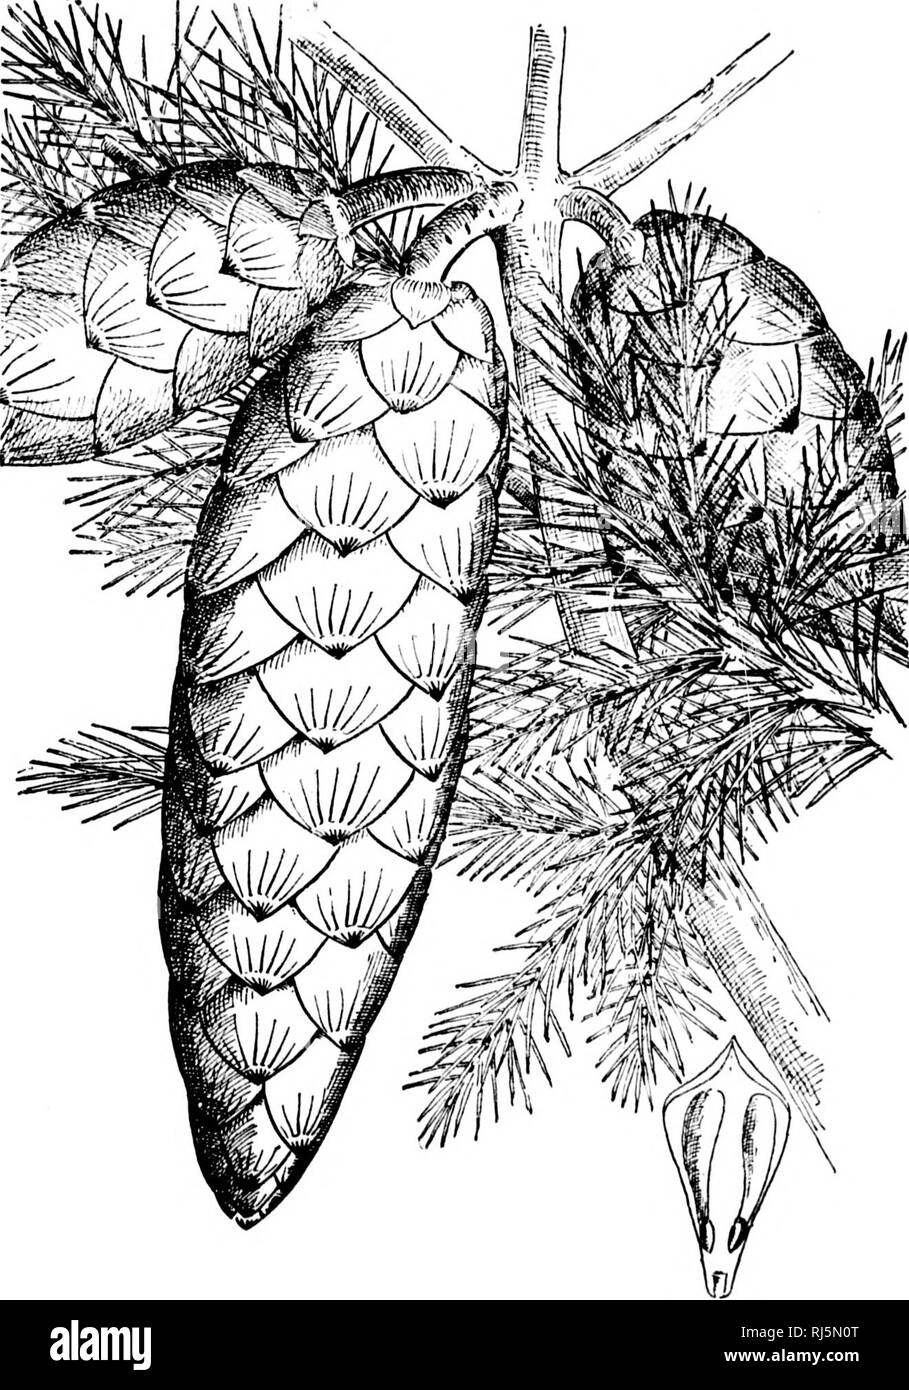 . A guide to the trees [microform]. Trees; Botany; Arbres; Botanique. ScaU o/ cone. PLATE CXLI. NORWAY SPRUCE. Puca exceba. (261). Please note that these images are extracted from scanned page images that may have been digitally enhanced for readability - coloration and appearance of these illustrations may not perfectly resemble the original work.. Lounsberry, Alice; Rowan, Ellis, 1858-1922. Toronto : W. Briggs - Stock Image